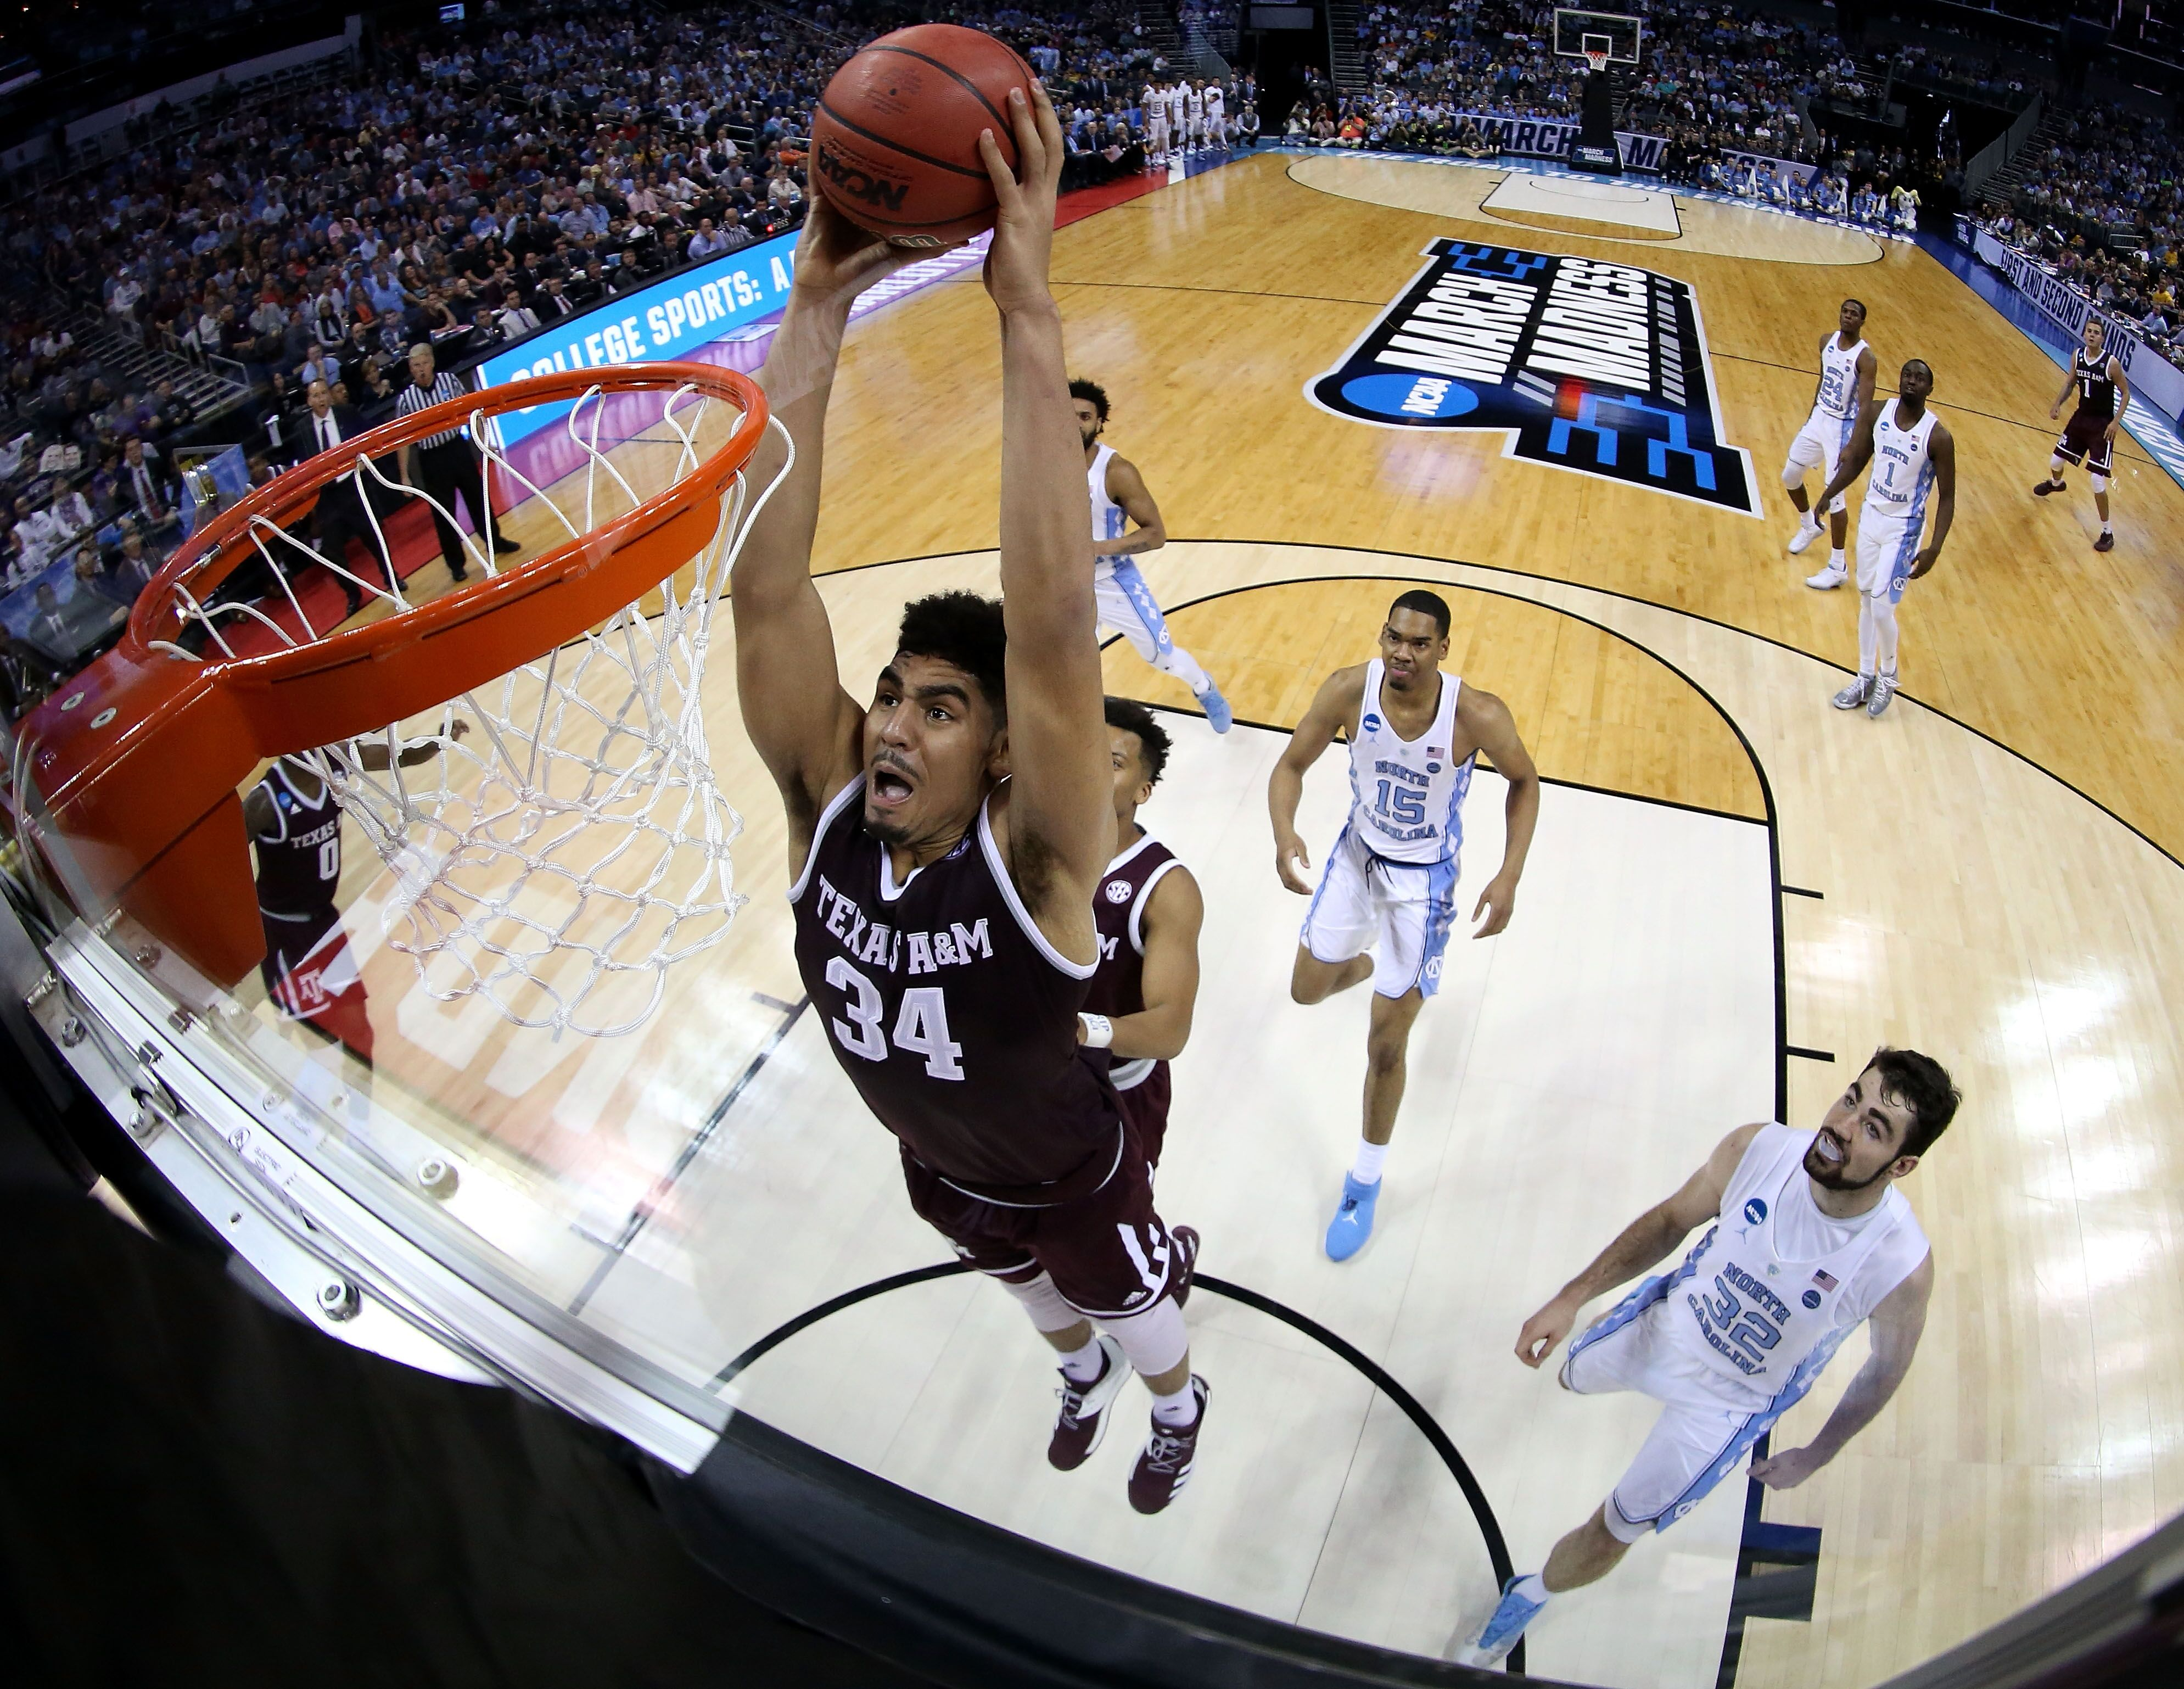 Image result for Texas A&M Aggies vs Michigan Wolverines basketball live